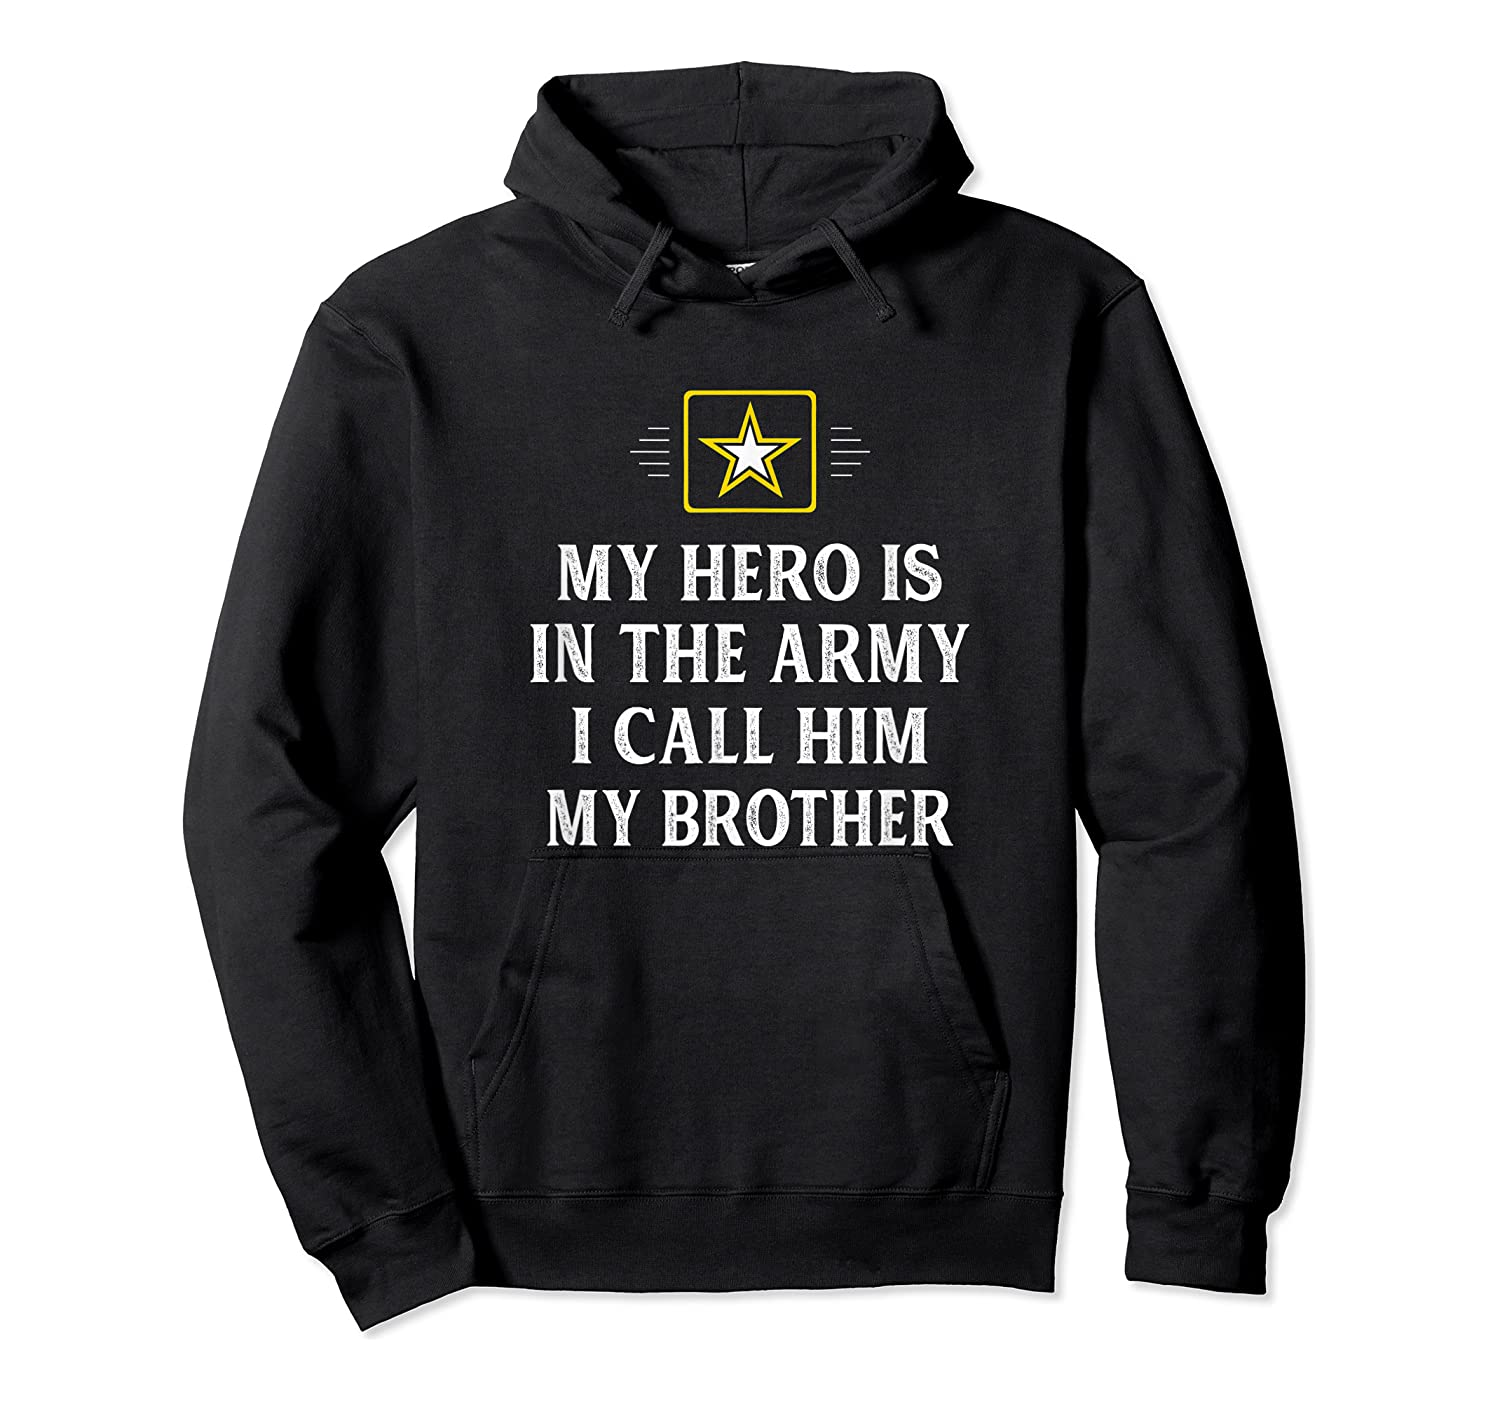 My Hero Is In The Army - I Call Him My Brother - Vintage - T-shirt Unisex Pullover Hoodie